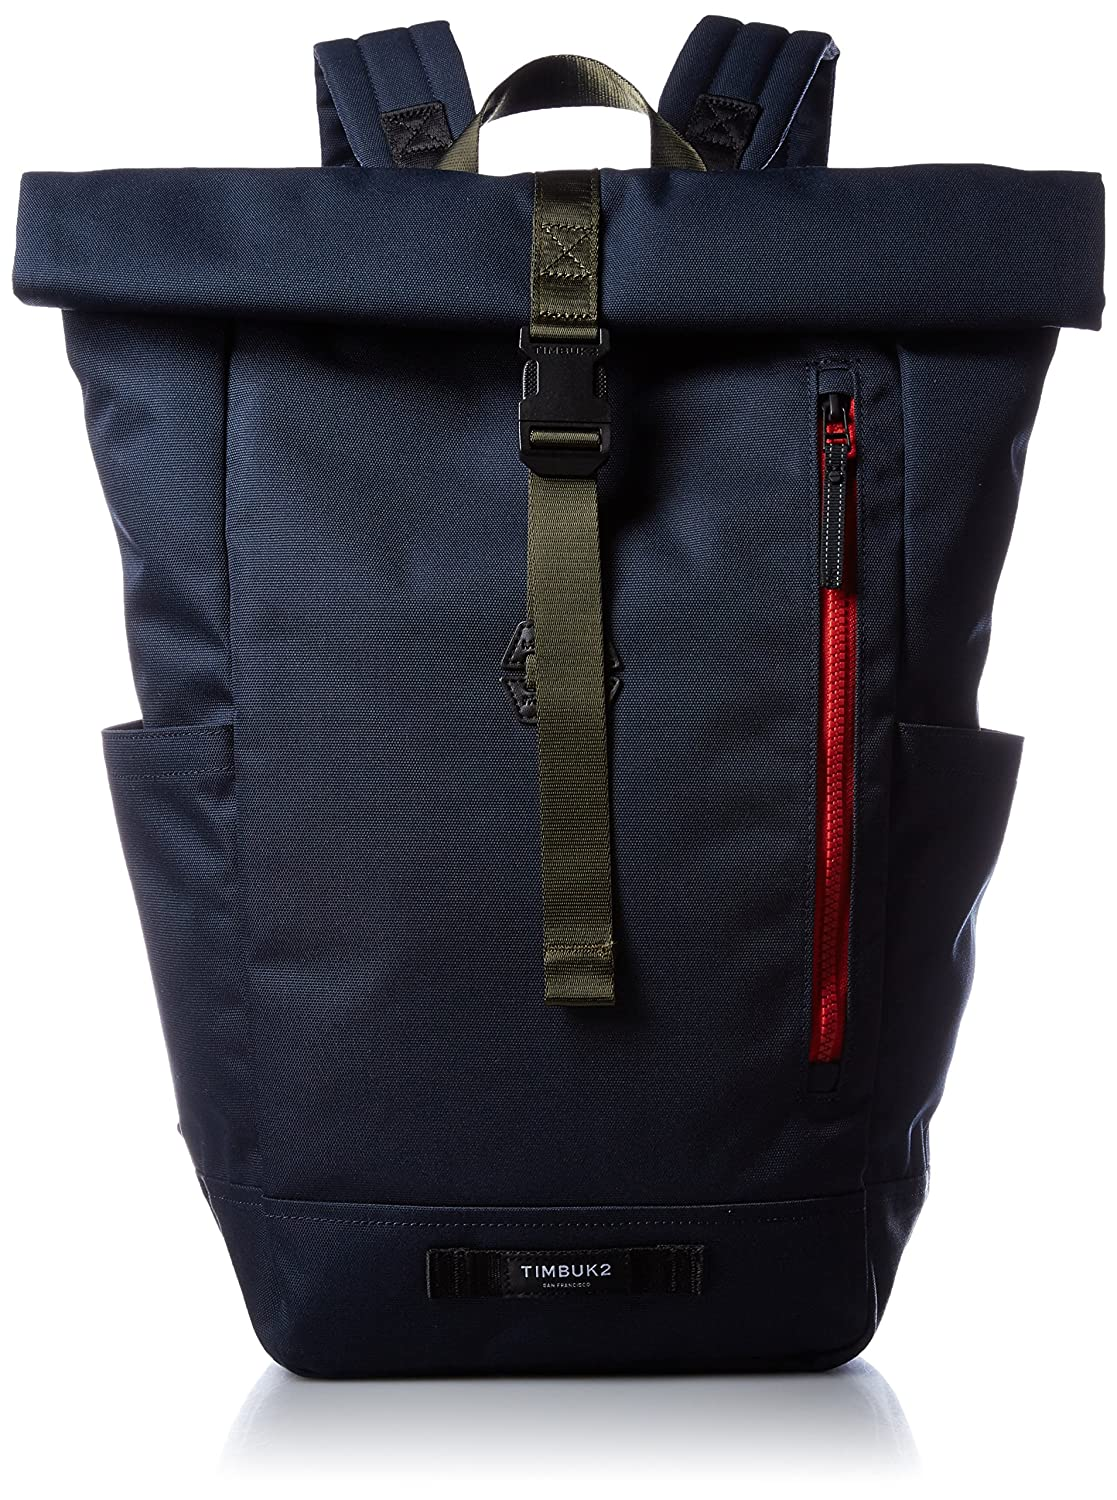 Timbuk2 Tuck Pack, Black, One Size 1010